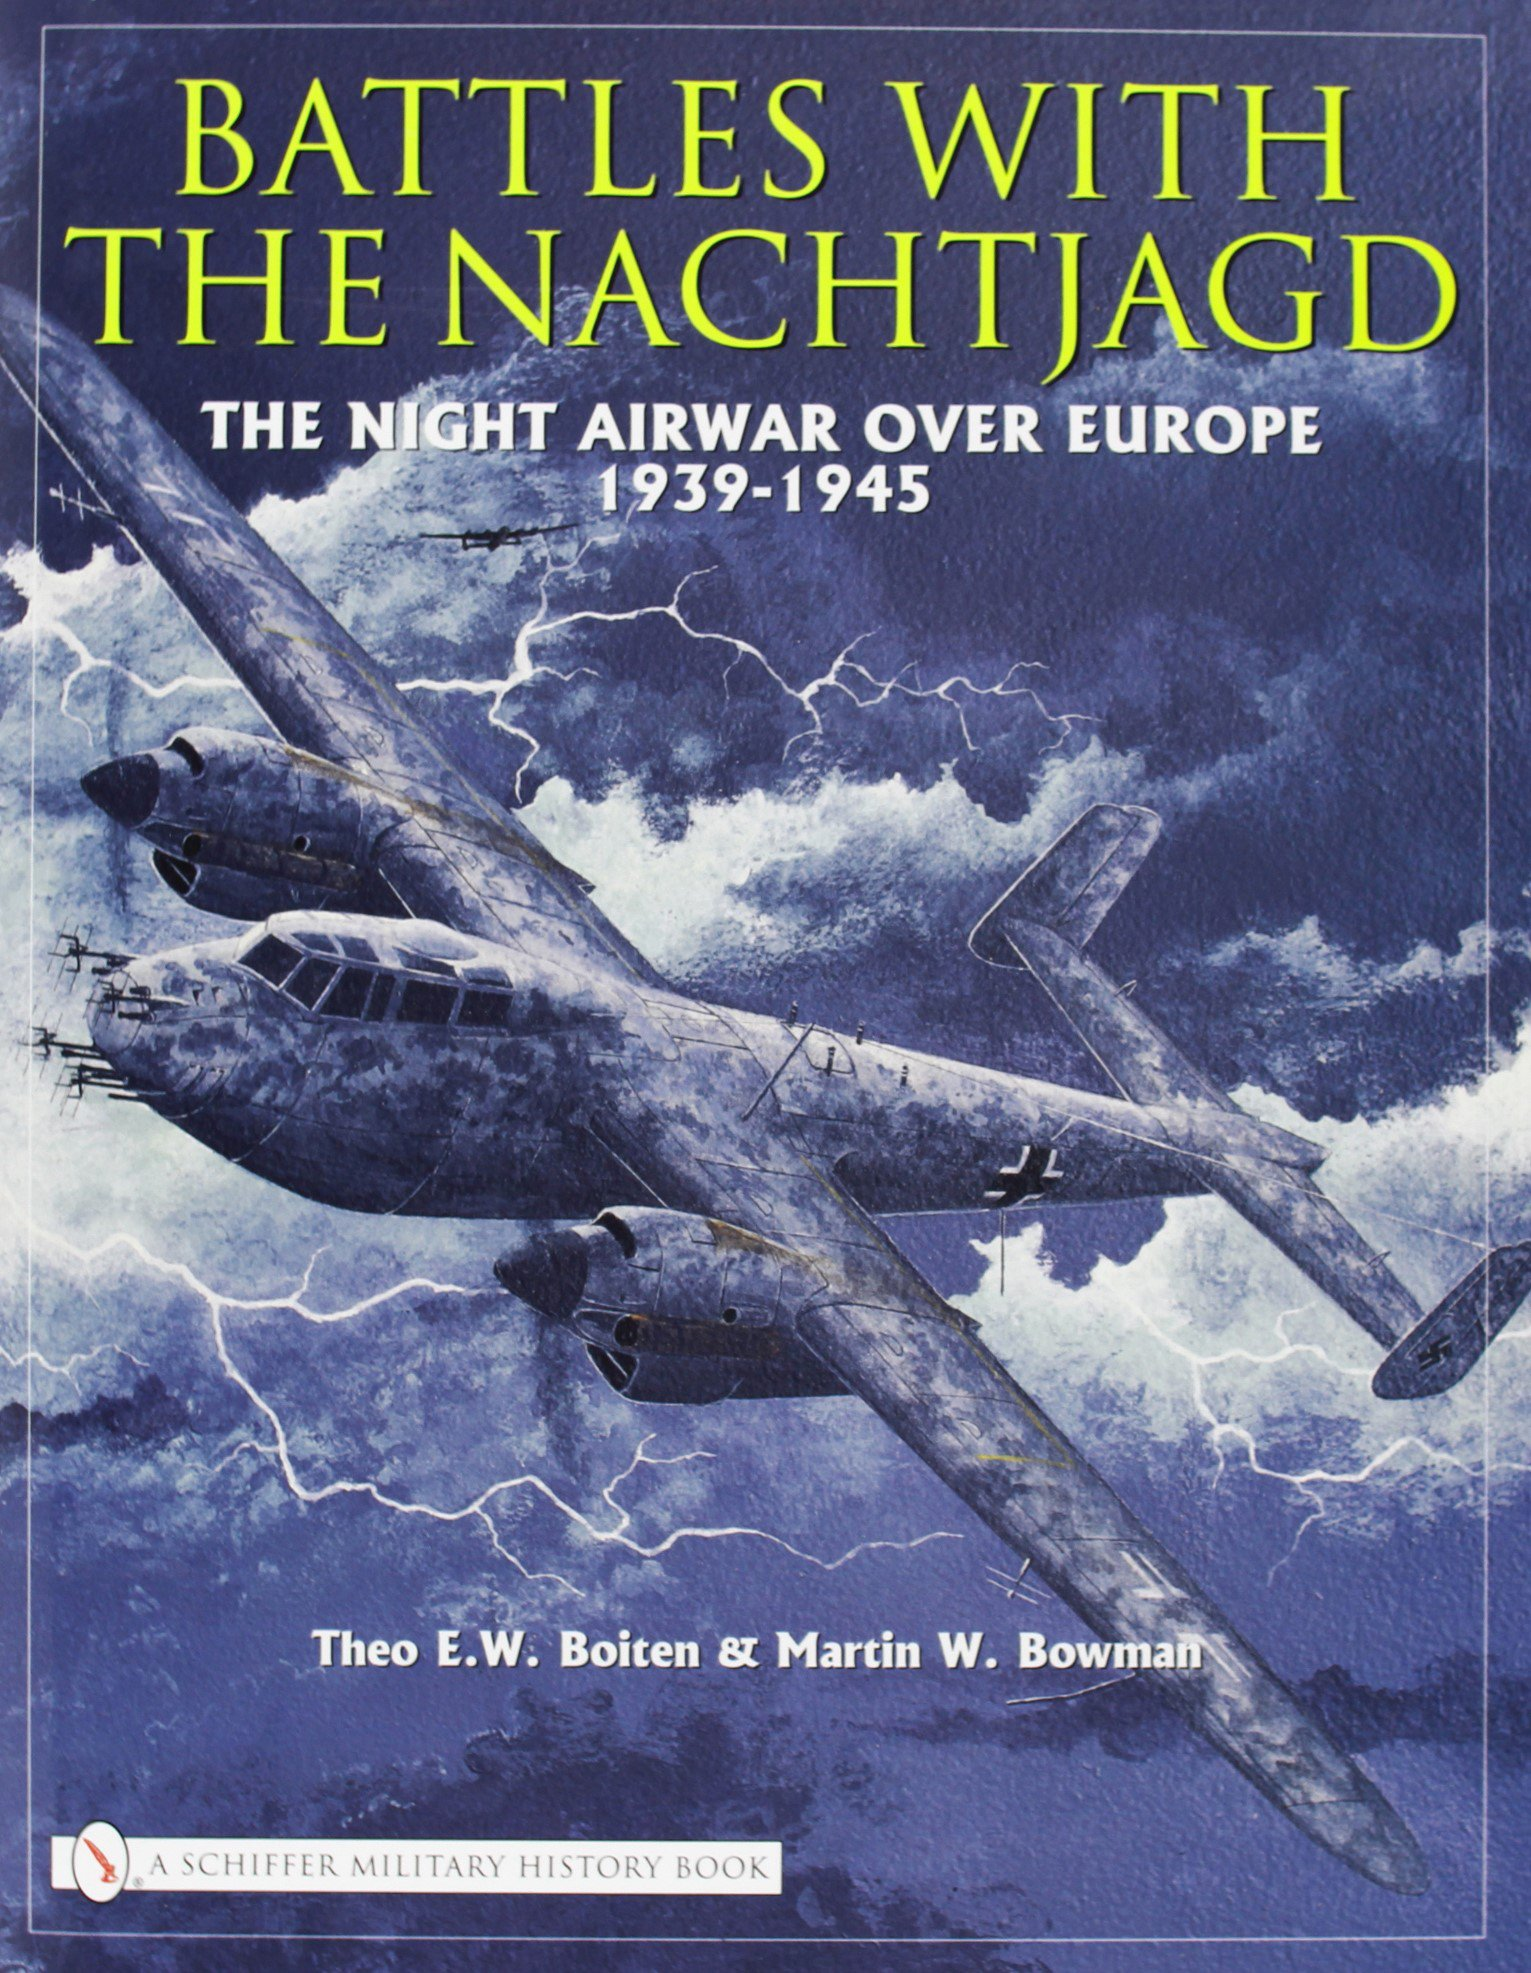 Battles with the Nachtjagd: The Night Airwar Over Europe 1939-1945 pdf epub